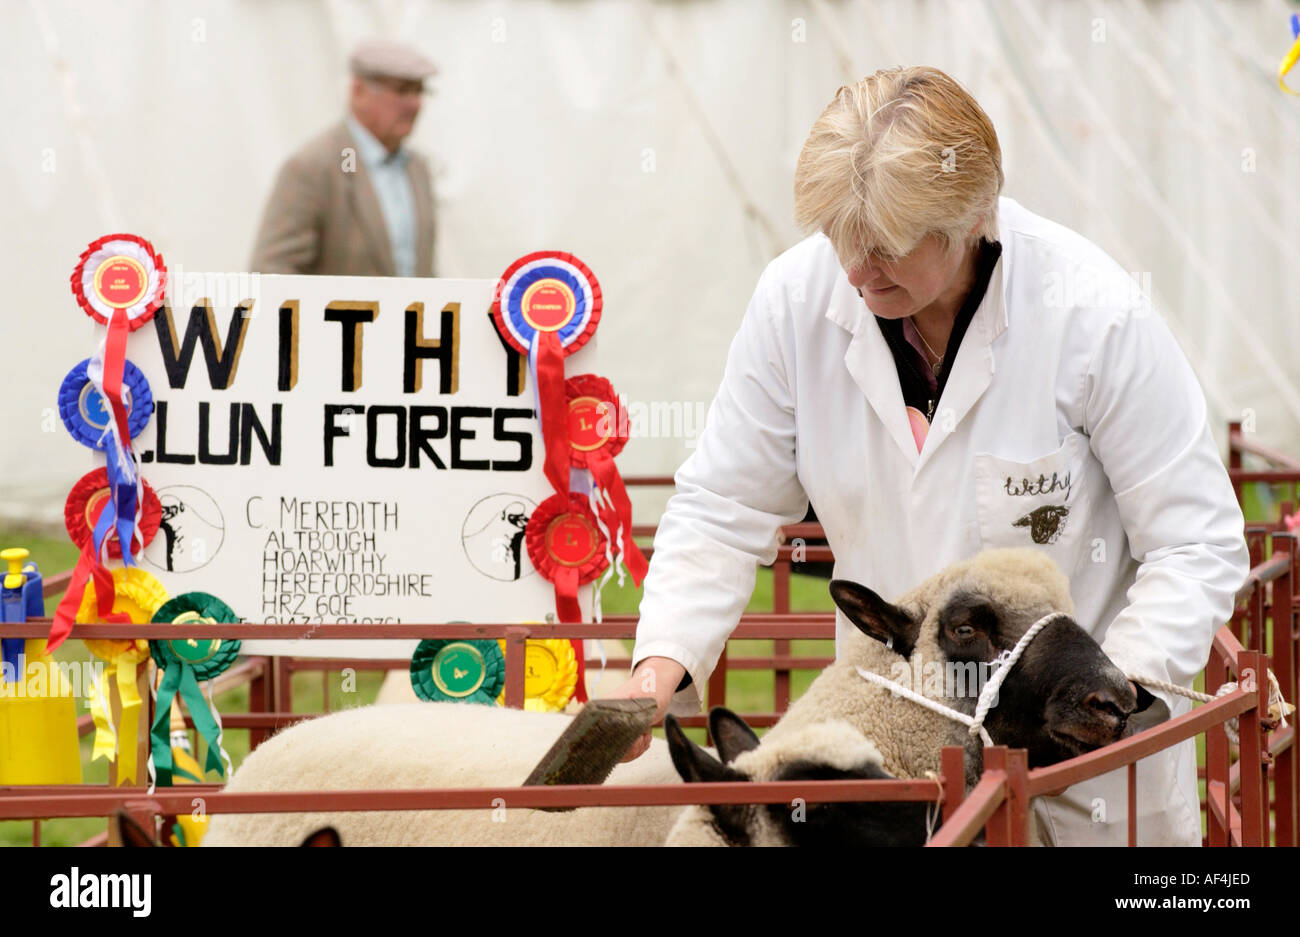 Grooming Clun Forest sheep at Brecknockshire Agricultural Society annual show in its 250th year in the market town of Brecon - Stock Image